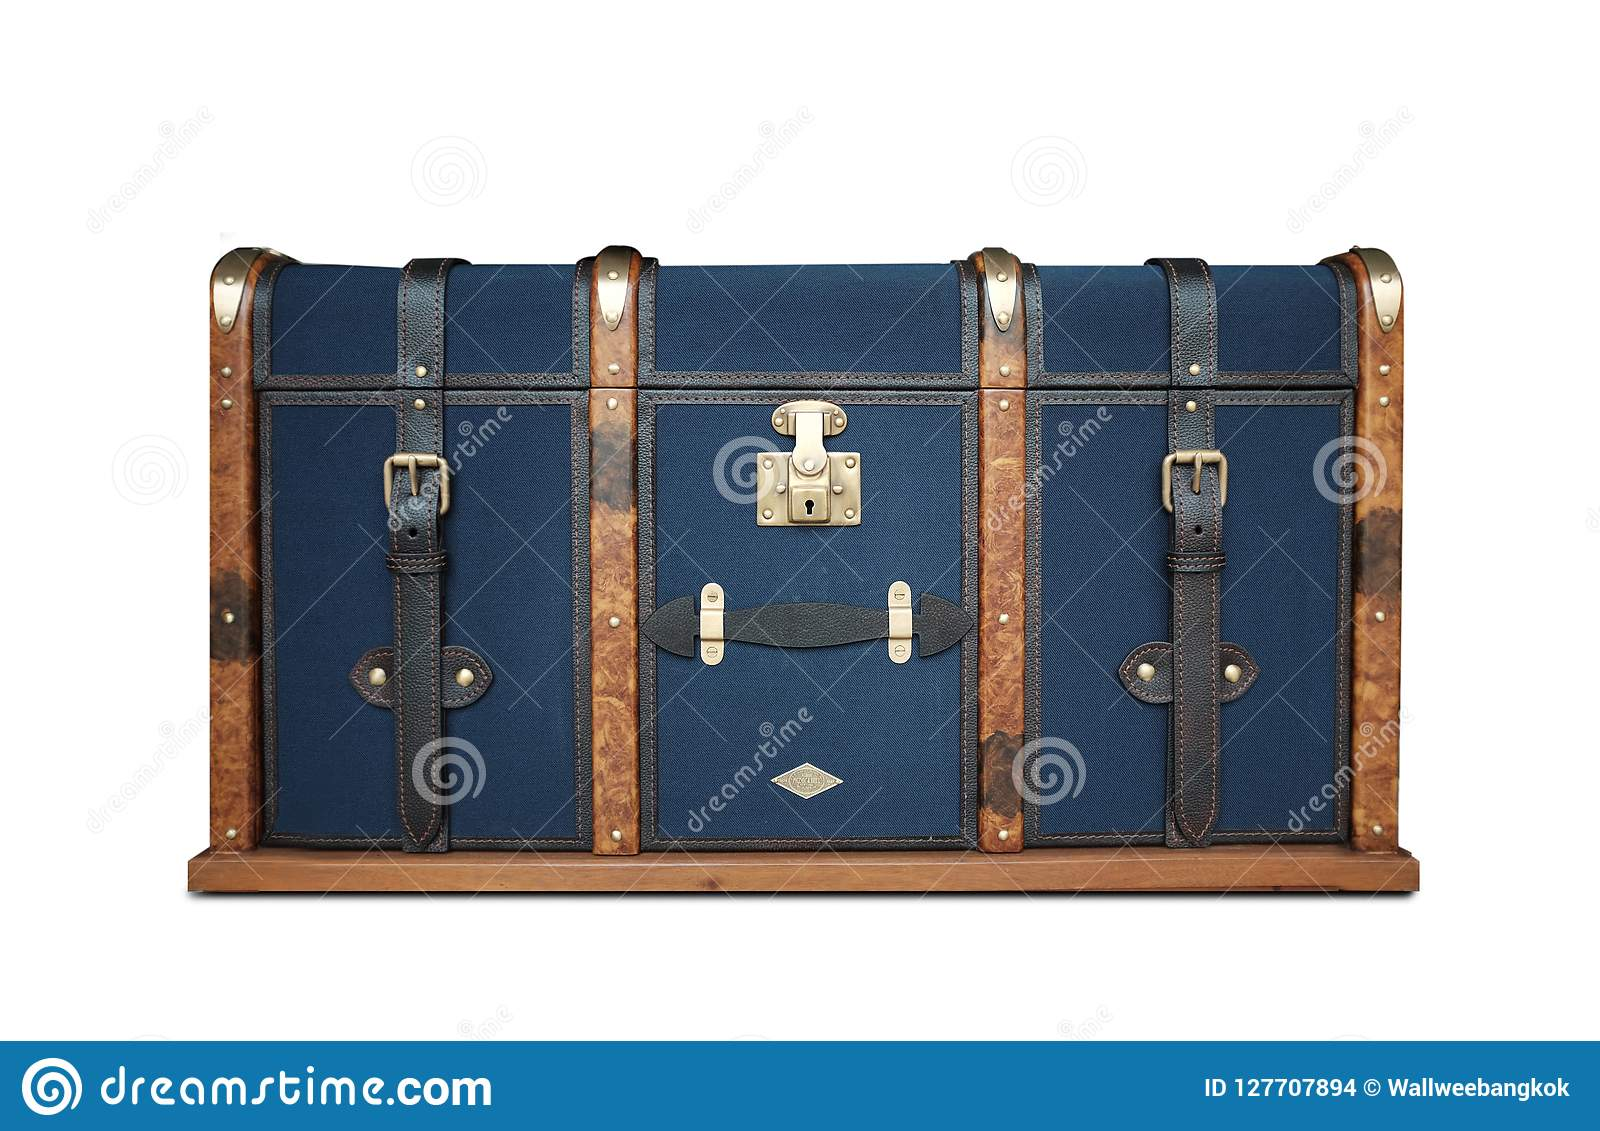 image of a luxtury chest isolated on a white background.